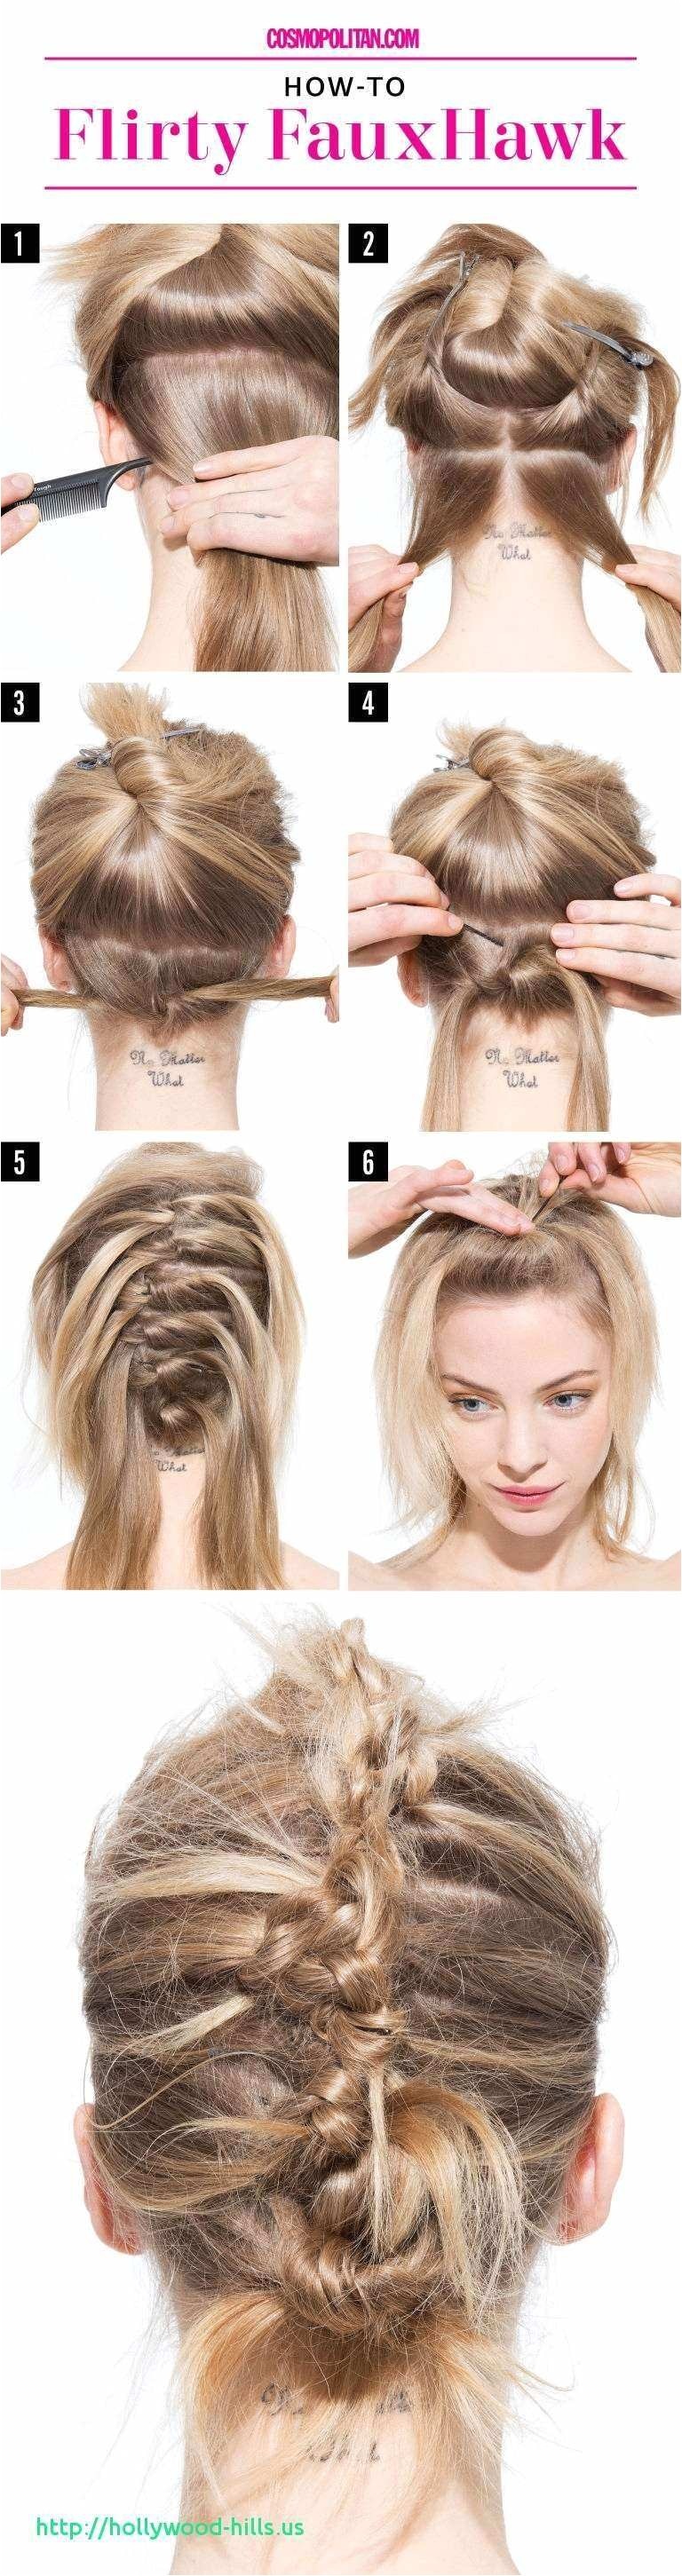 Cute Hairstyles for Wavy Hair Inspirational Elegant evening Hairstyles for Long Hair Awesome Haircuts 0d